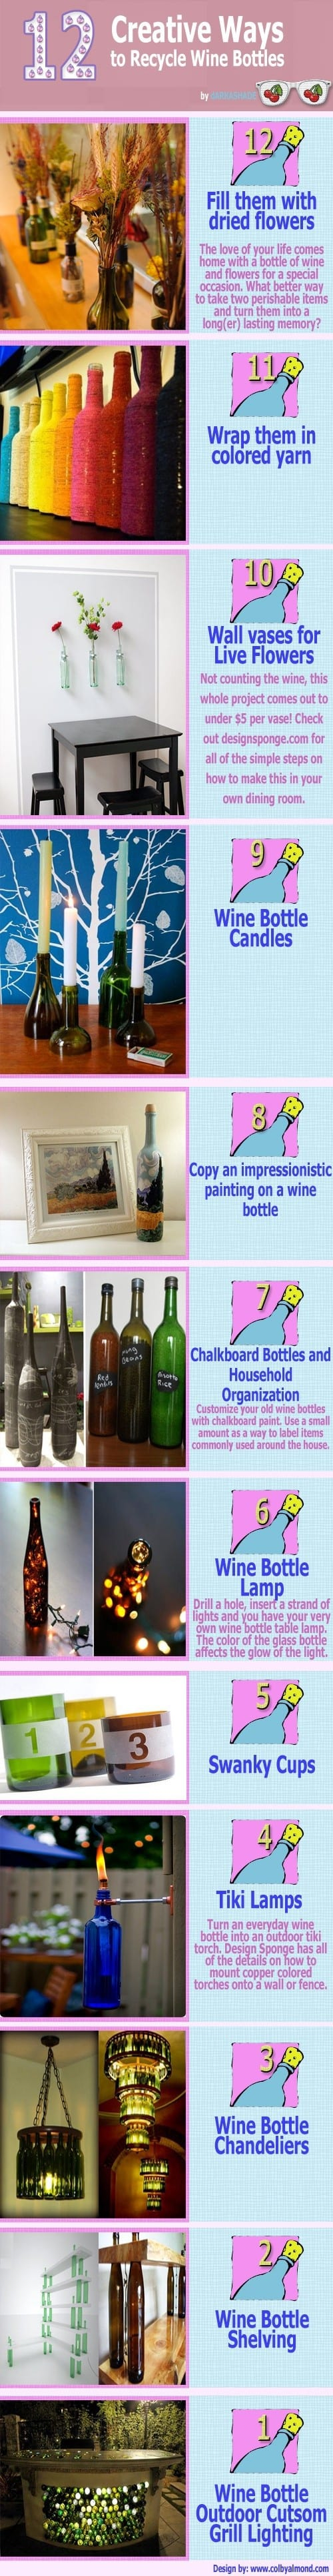 Wine-ing Wednesday: Cool Uses for Wine Bottles